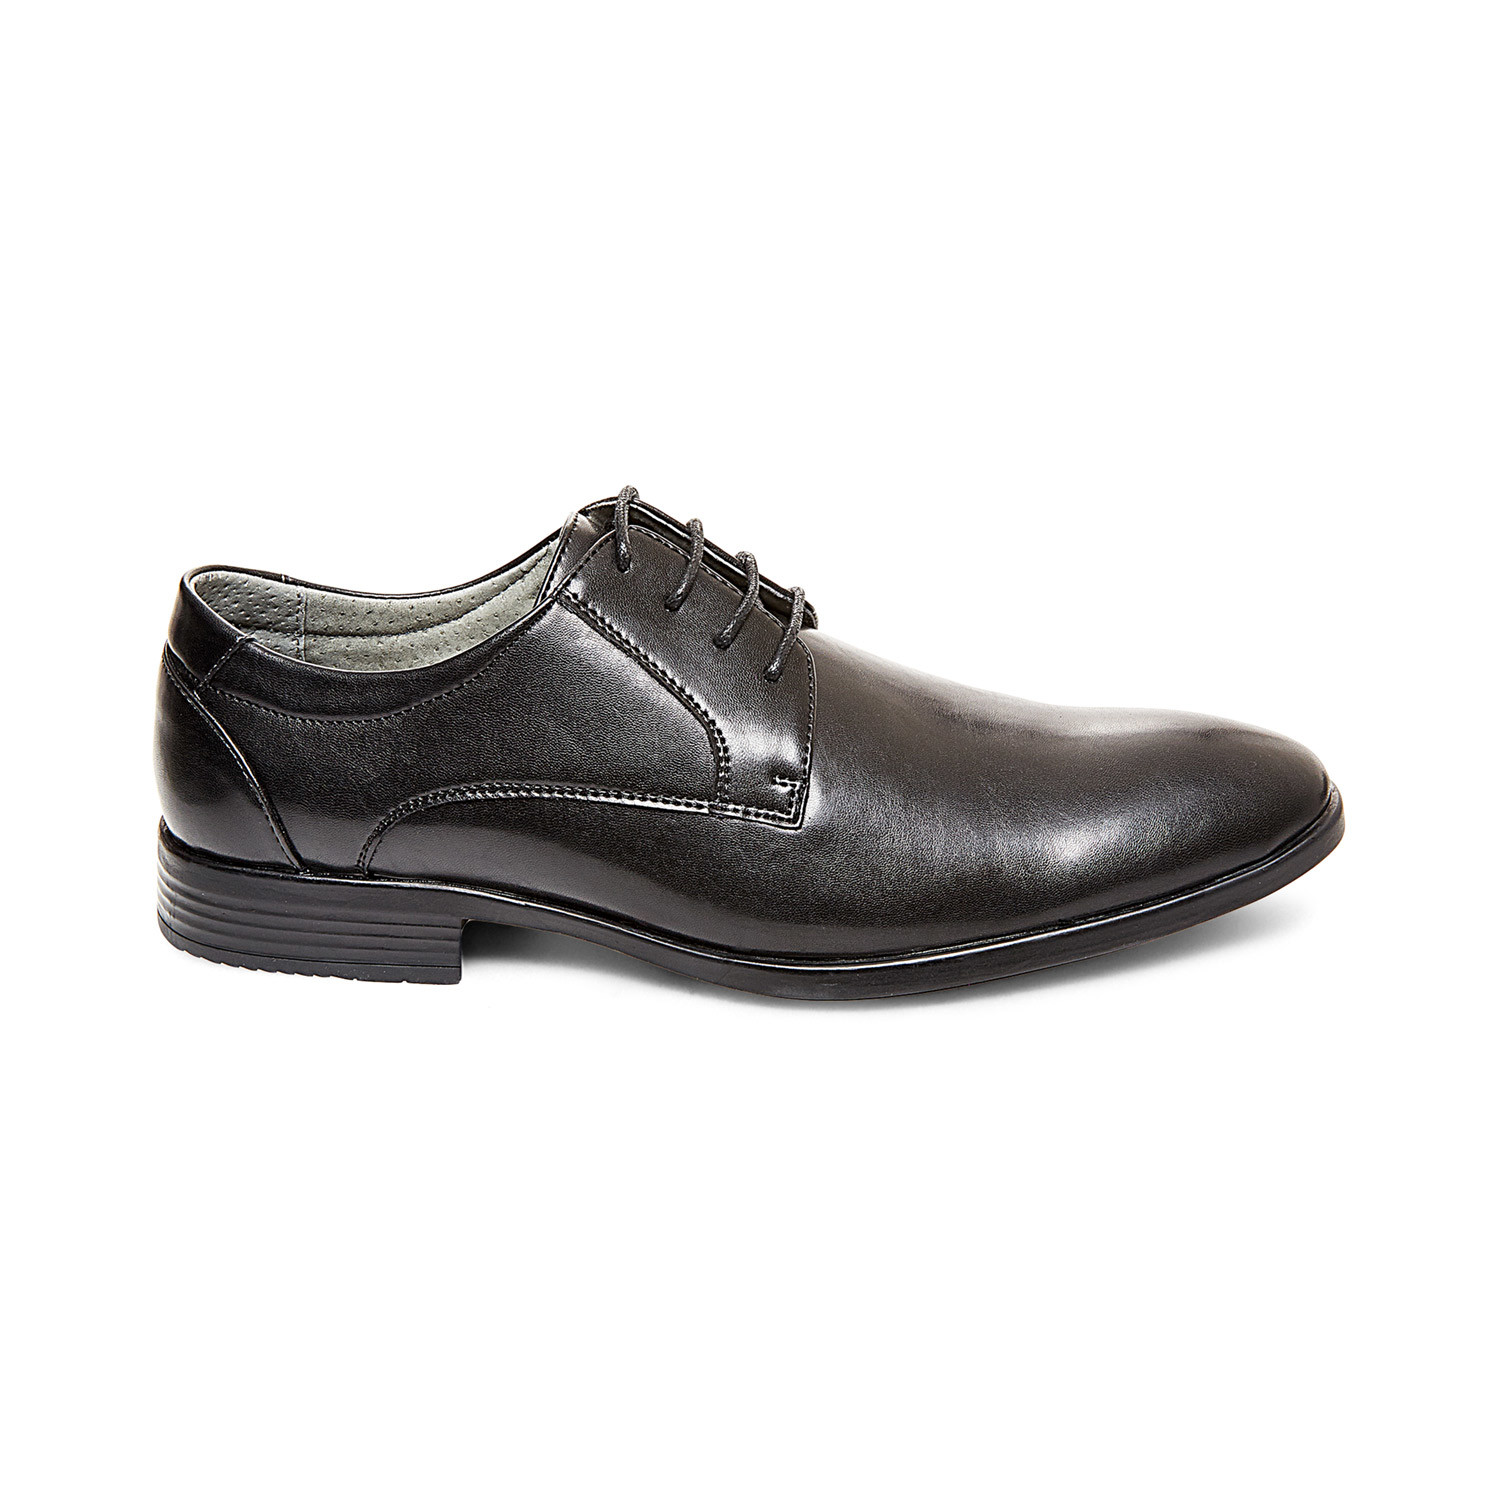 4cc0a32a9d5 Jelsin Cap-Toe Oxford    Black (US  11) - Steve Madden Shoes - Touch ...